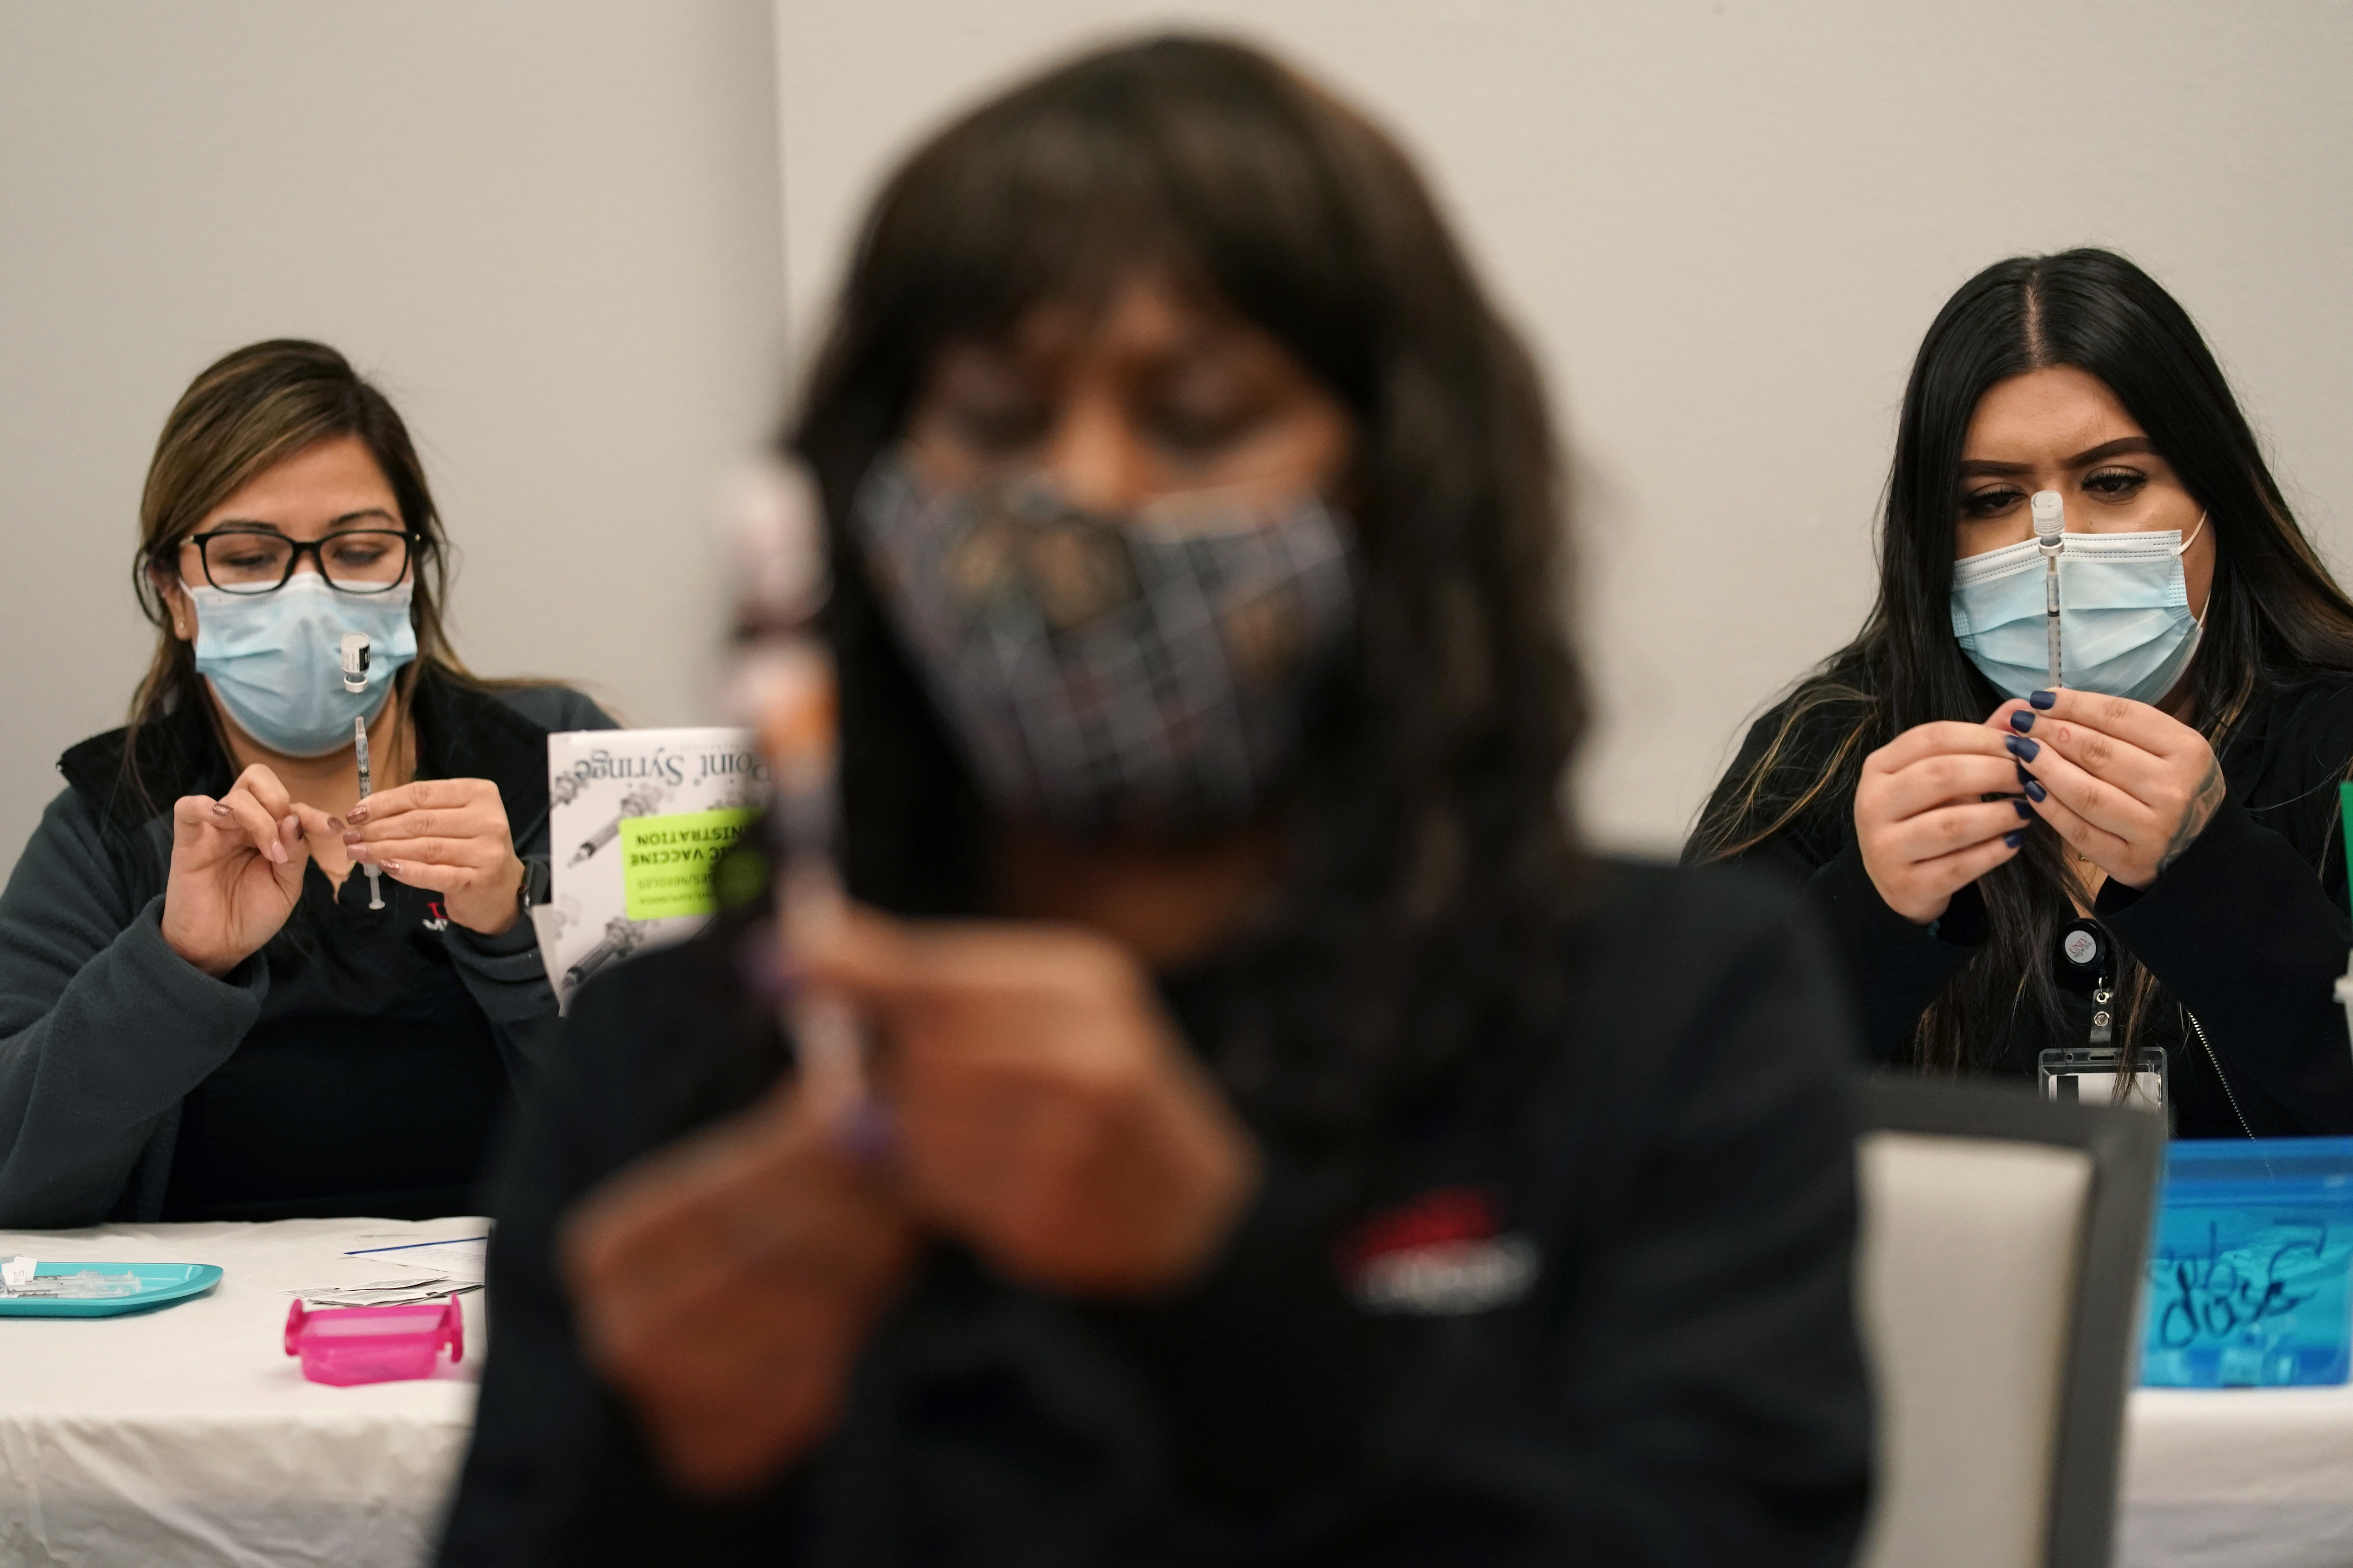 In this Jan. 22, 2021, file photo, certified medical assistants Martha Sida, from left, Tina Killebrew and Cynthia Bernal prepare doses of the Pfizer-BioNTech COVID-19 vaccine at a vaccination center at the University of Nevada, Las Vegas, in Las Vegas.